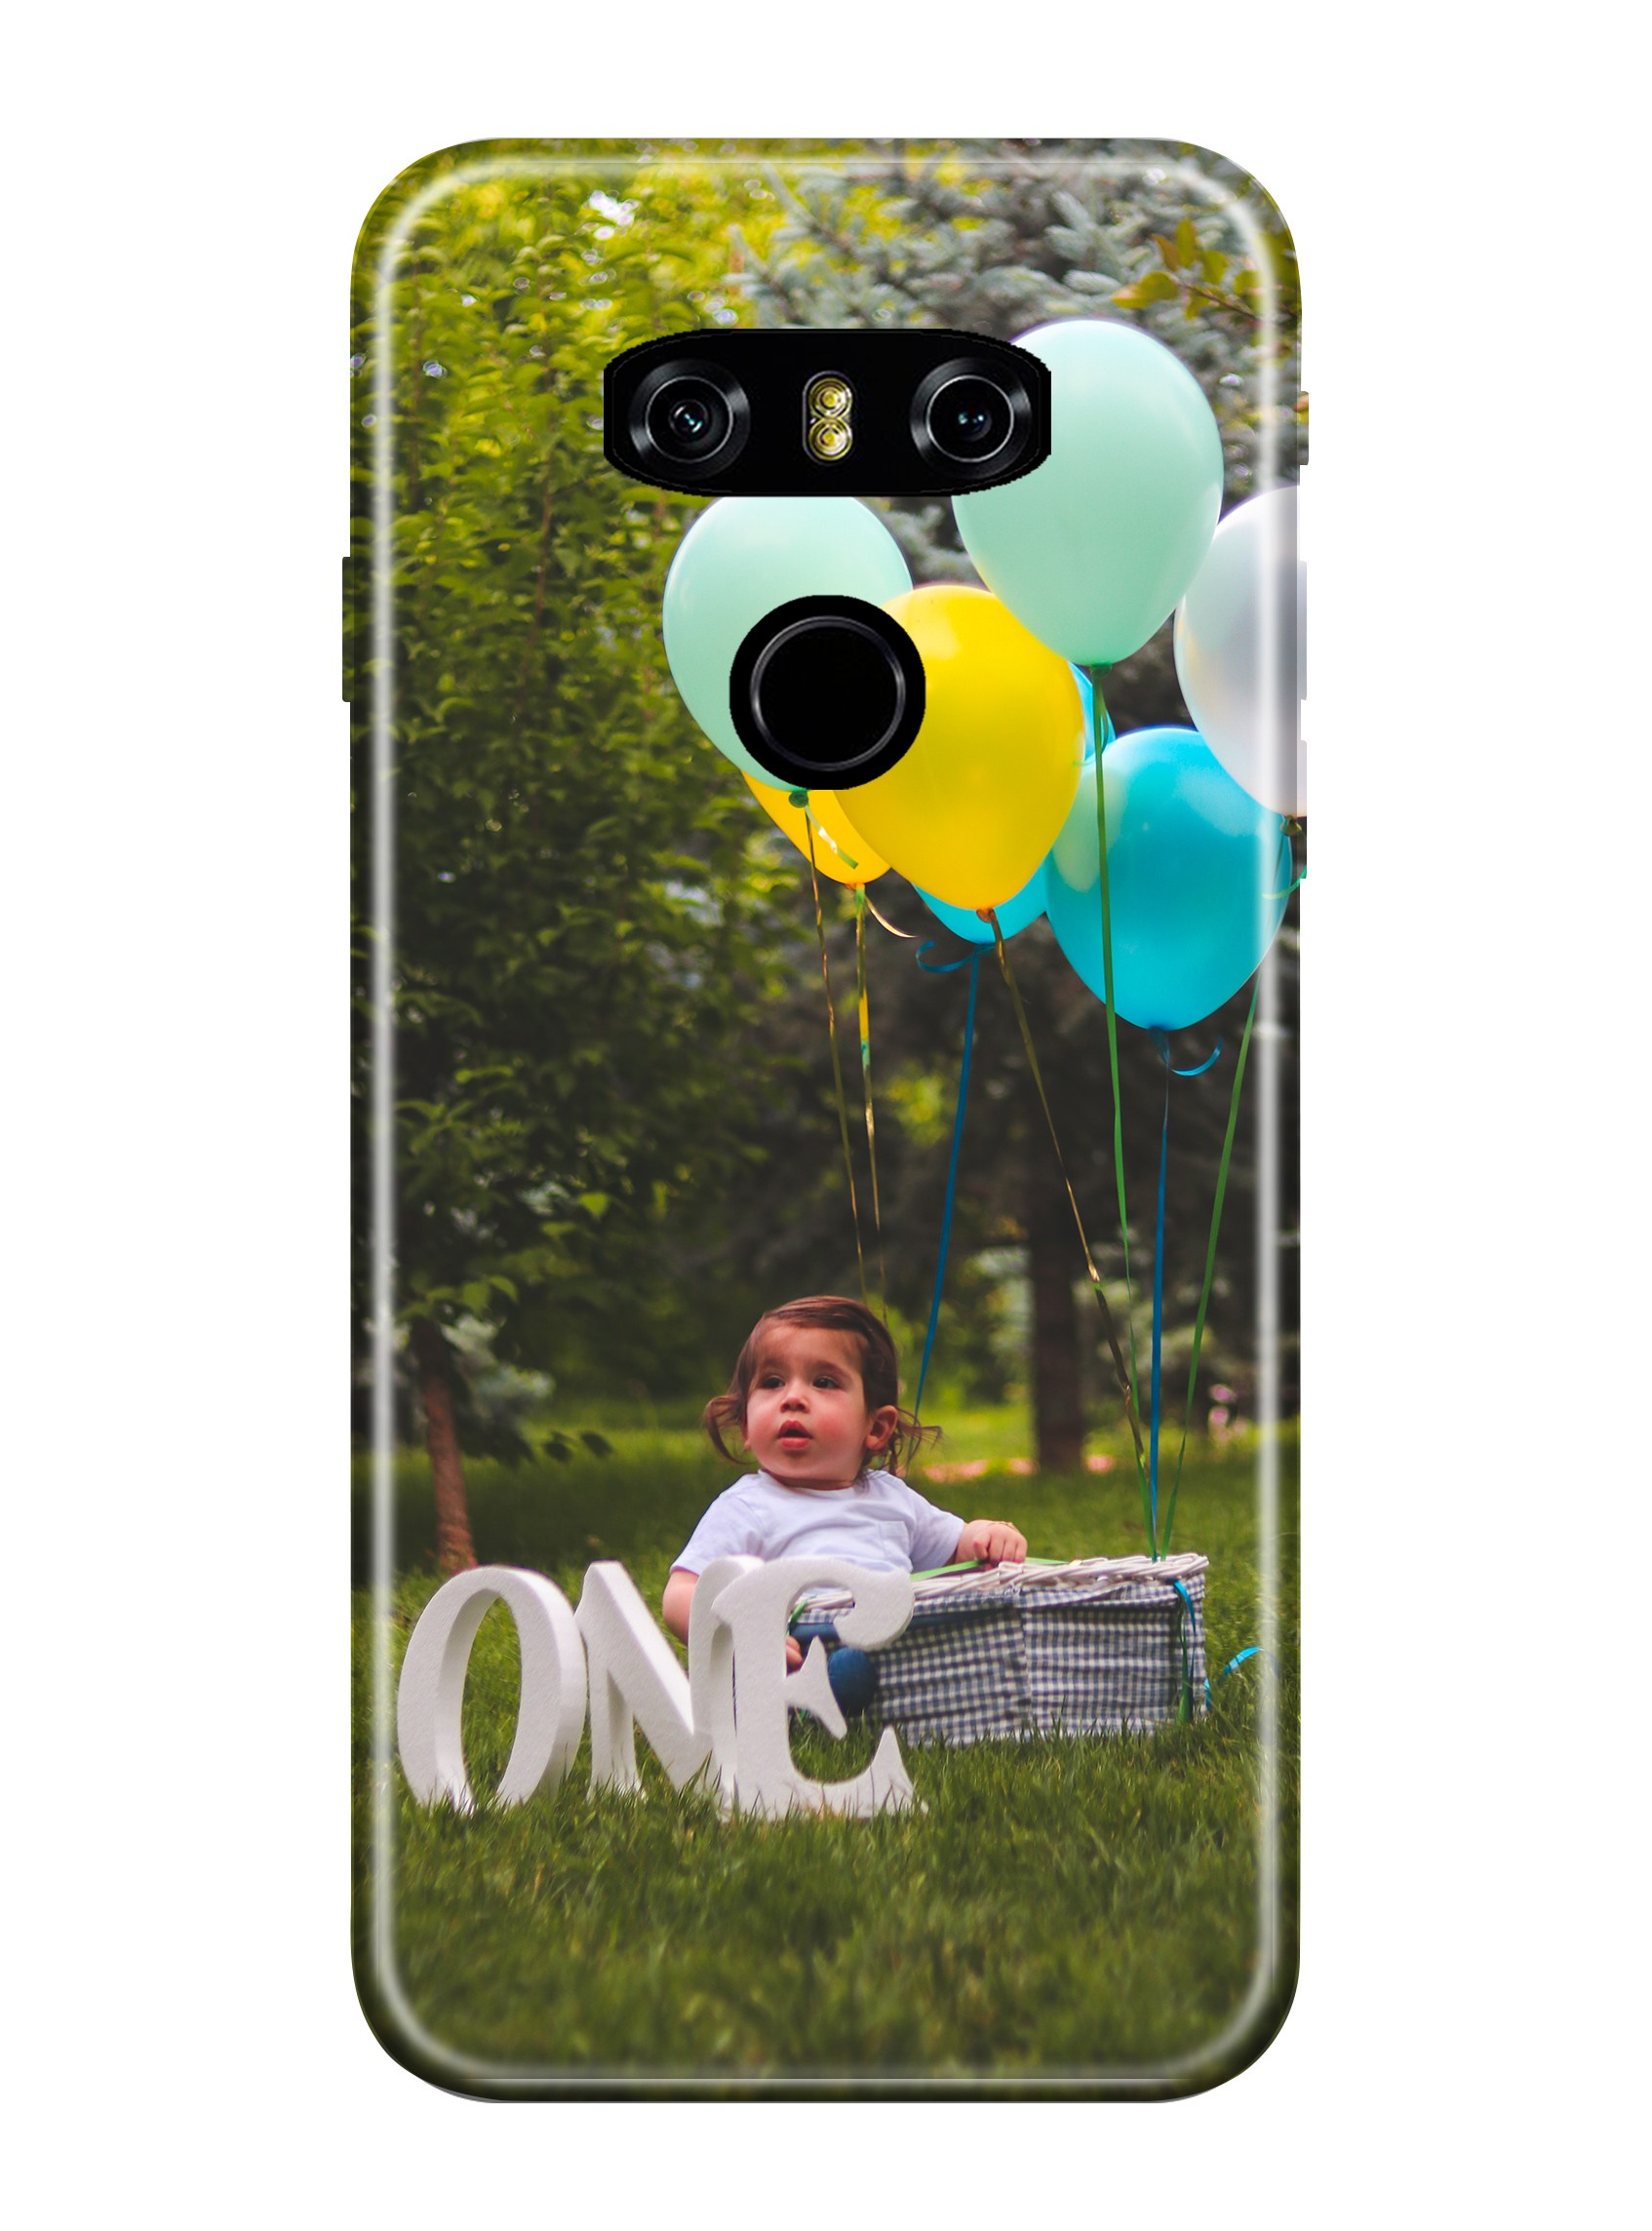 Personalised Case for LG G5